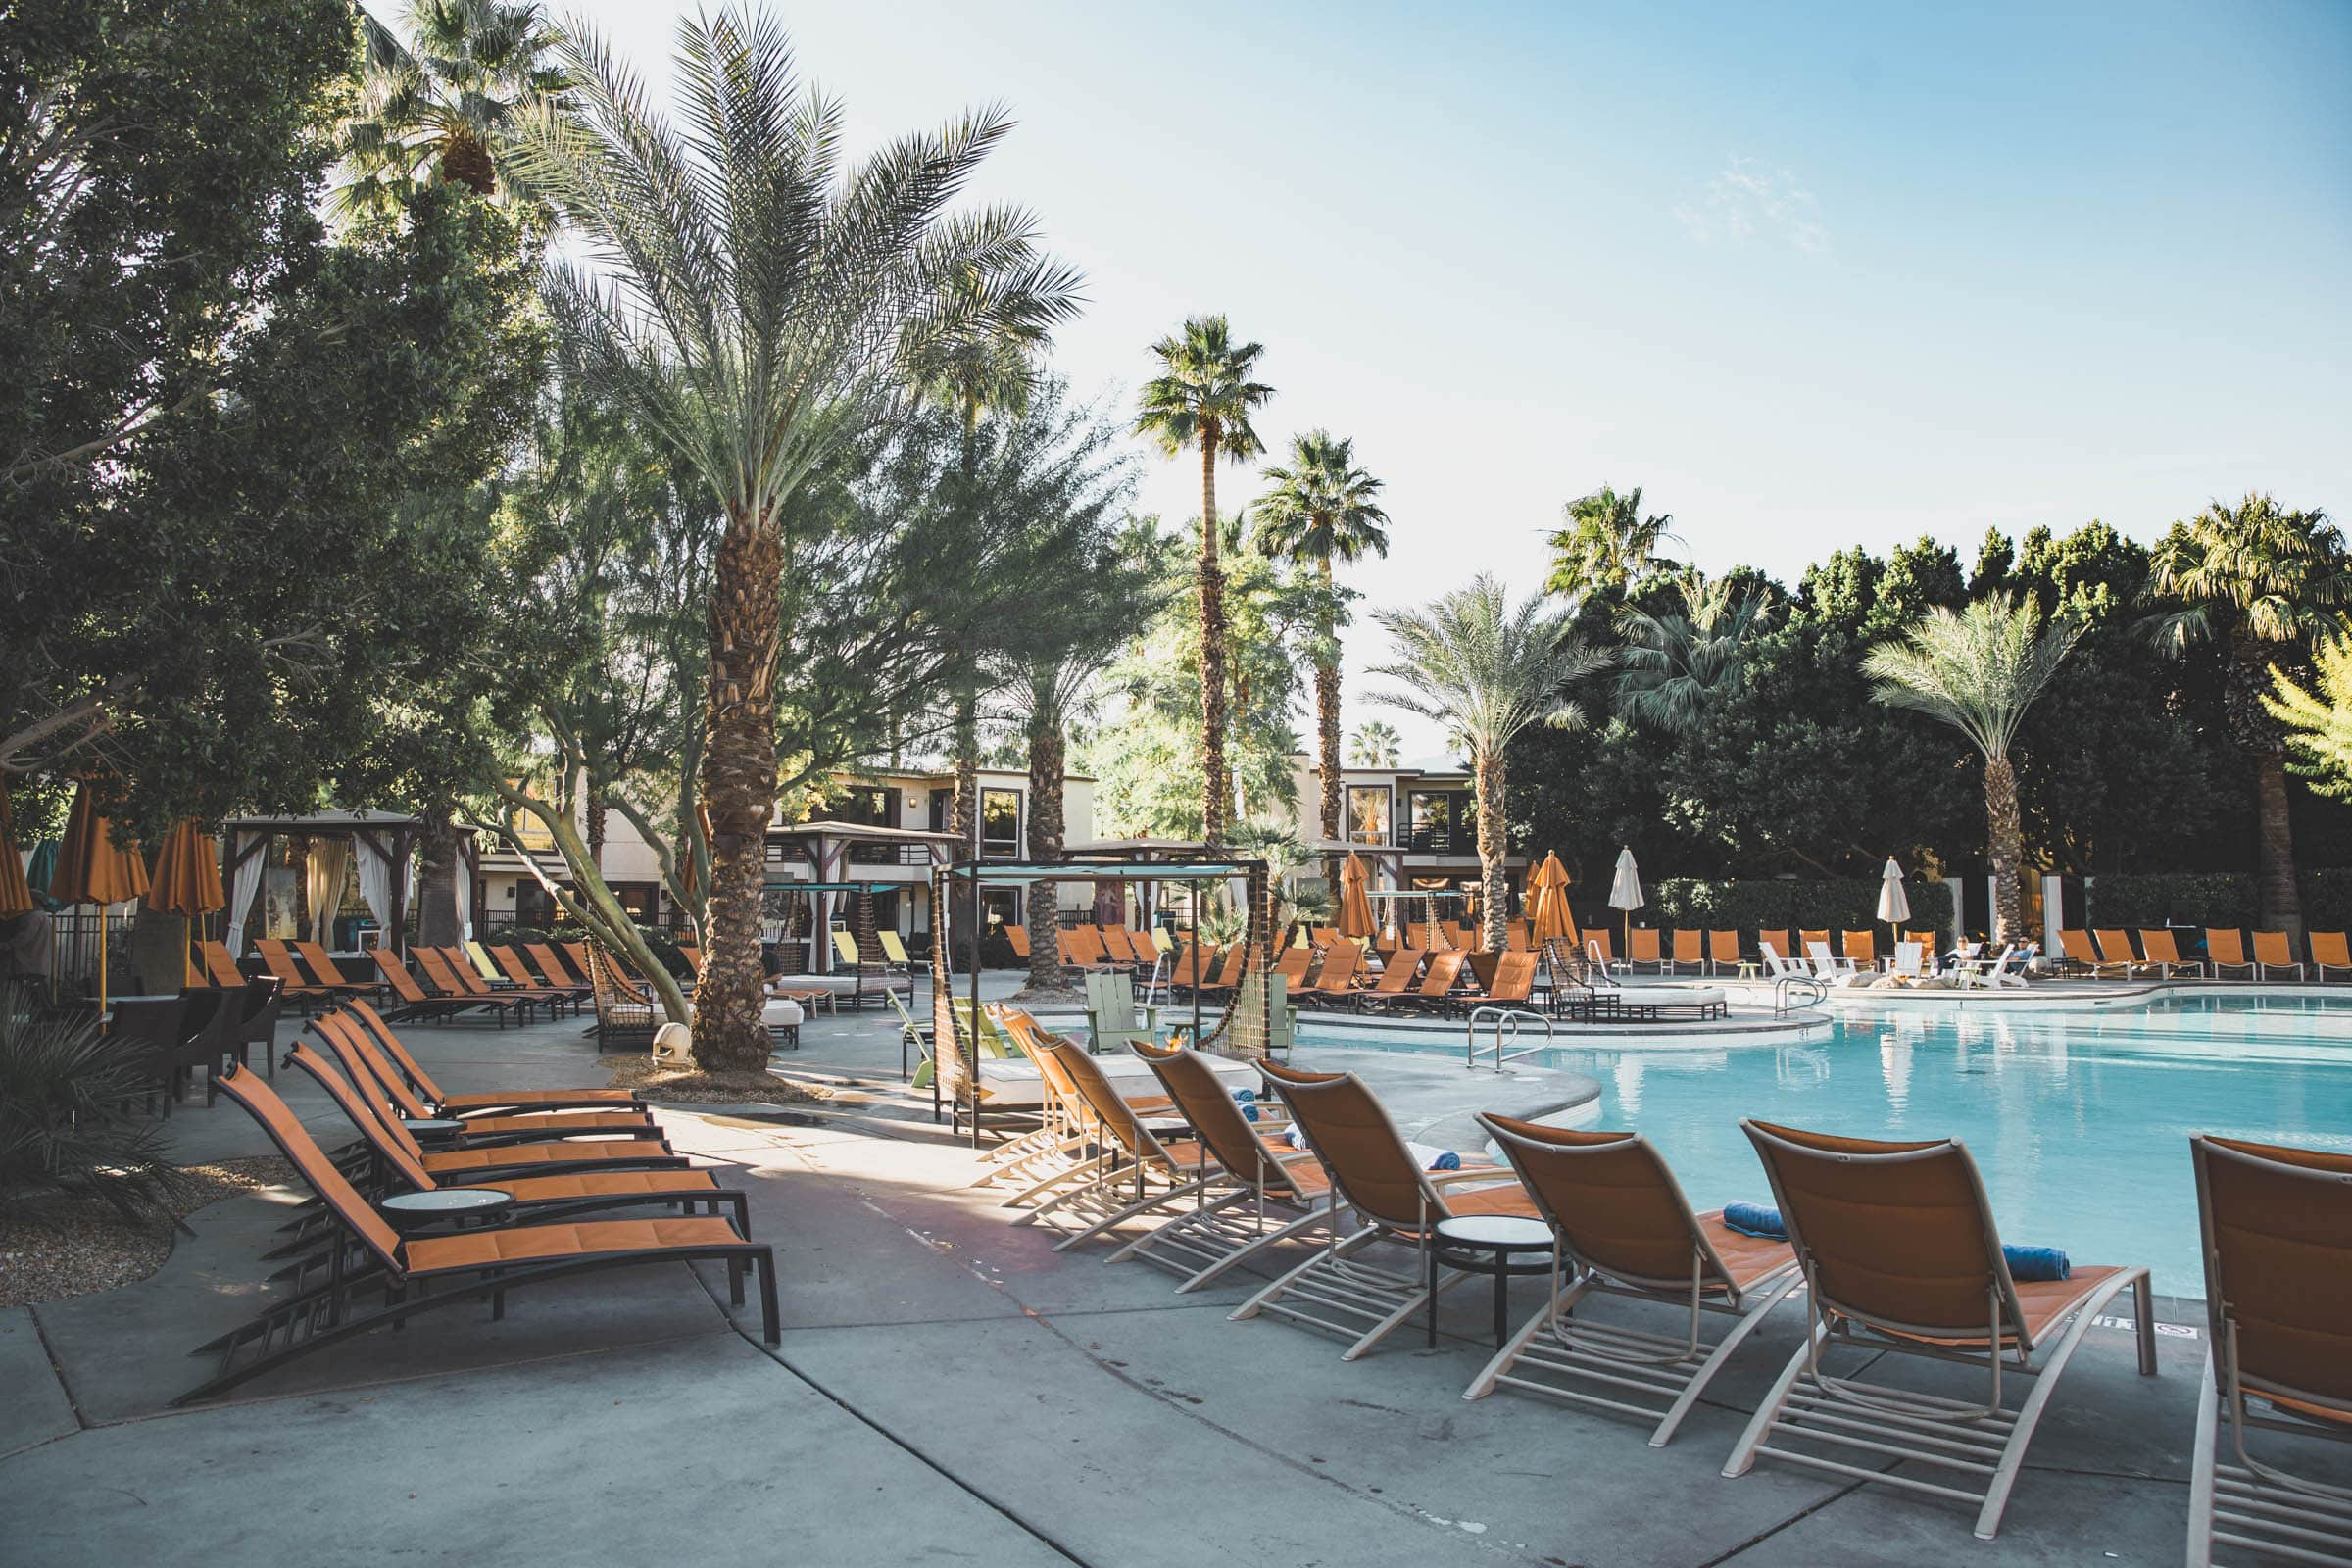 Hotels in Palm Springs